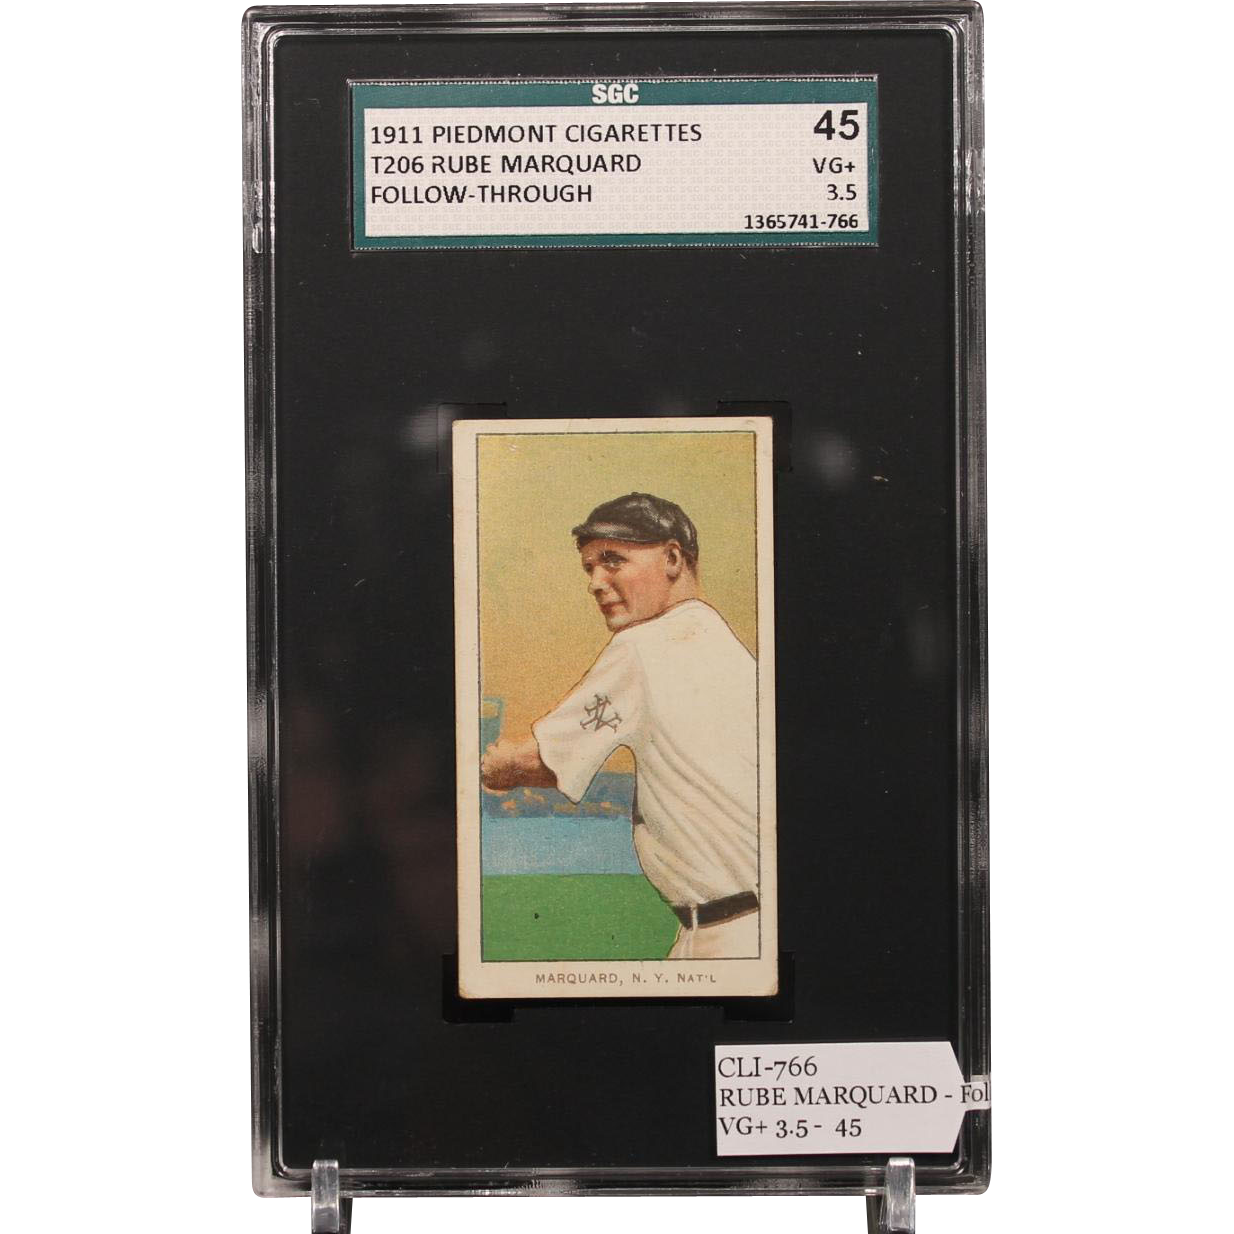 T206 RUBE MARQUARD - Follow-Through SGC grade 45 VG+ 3.5